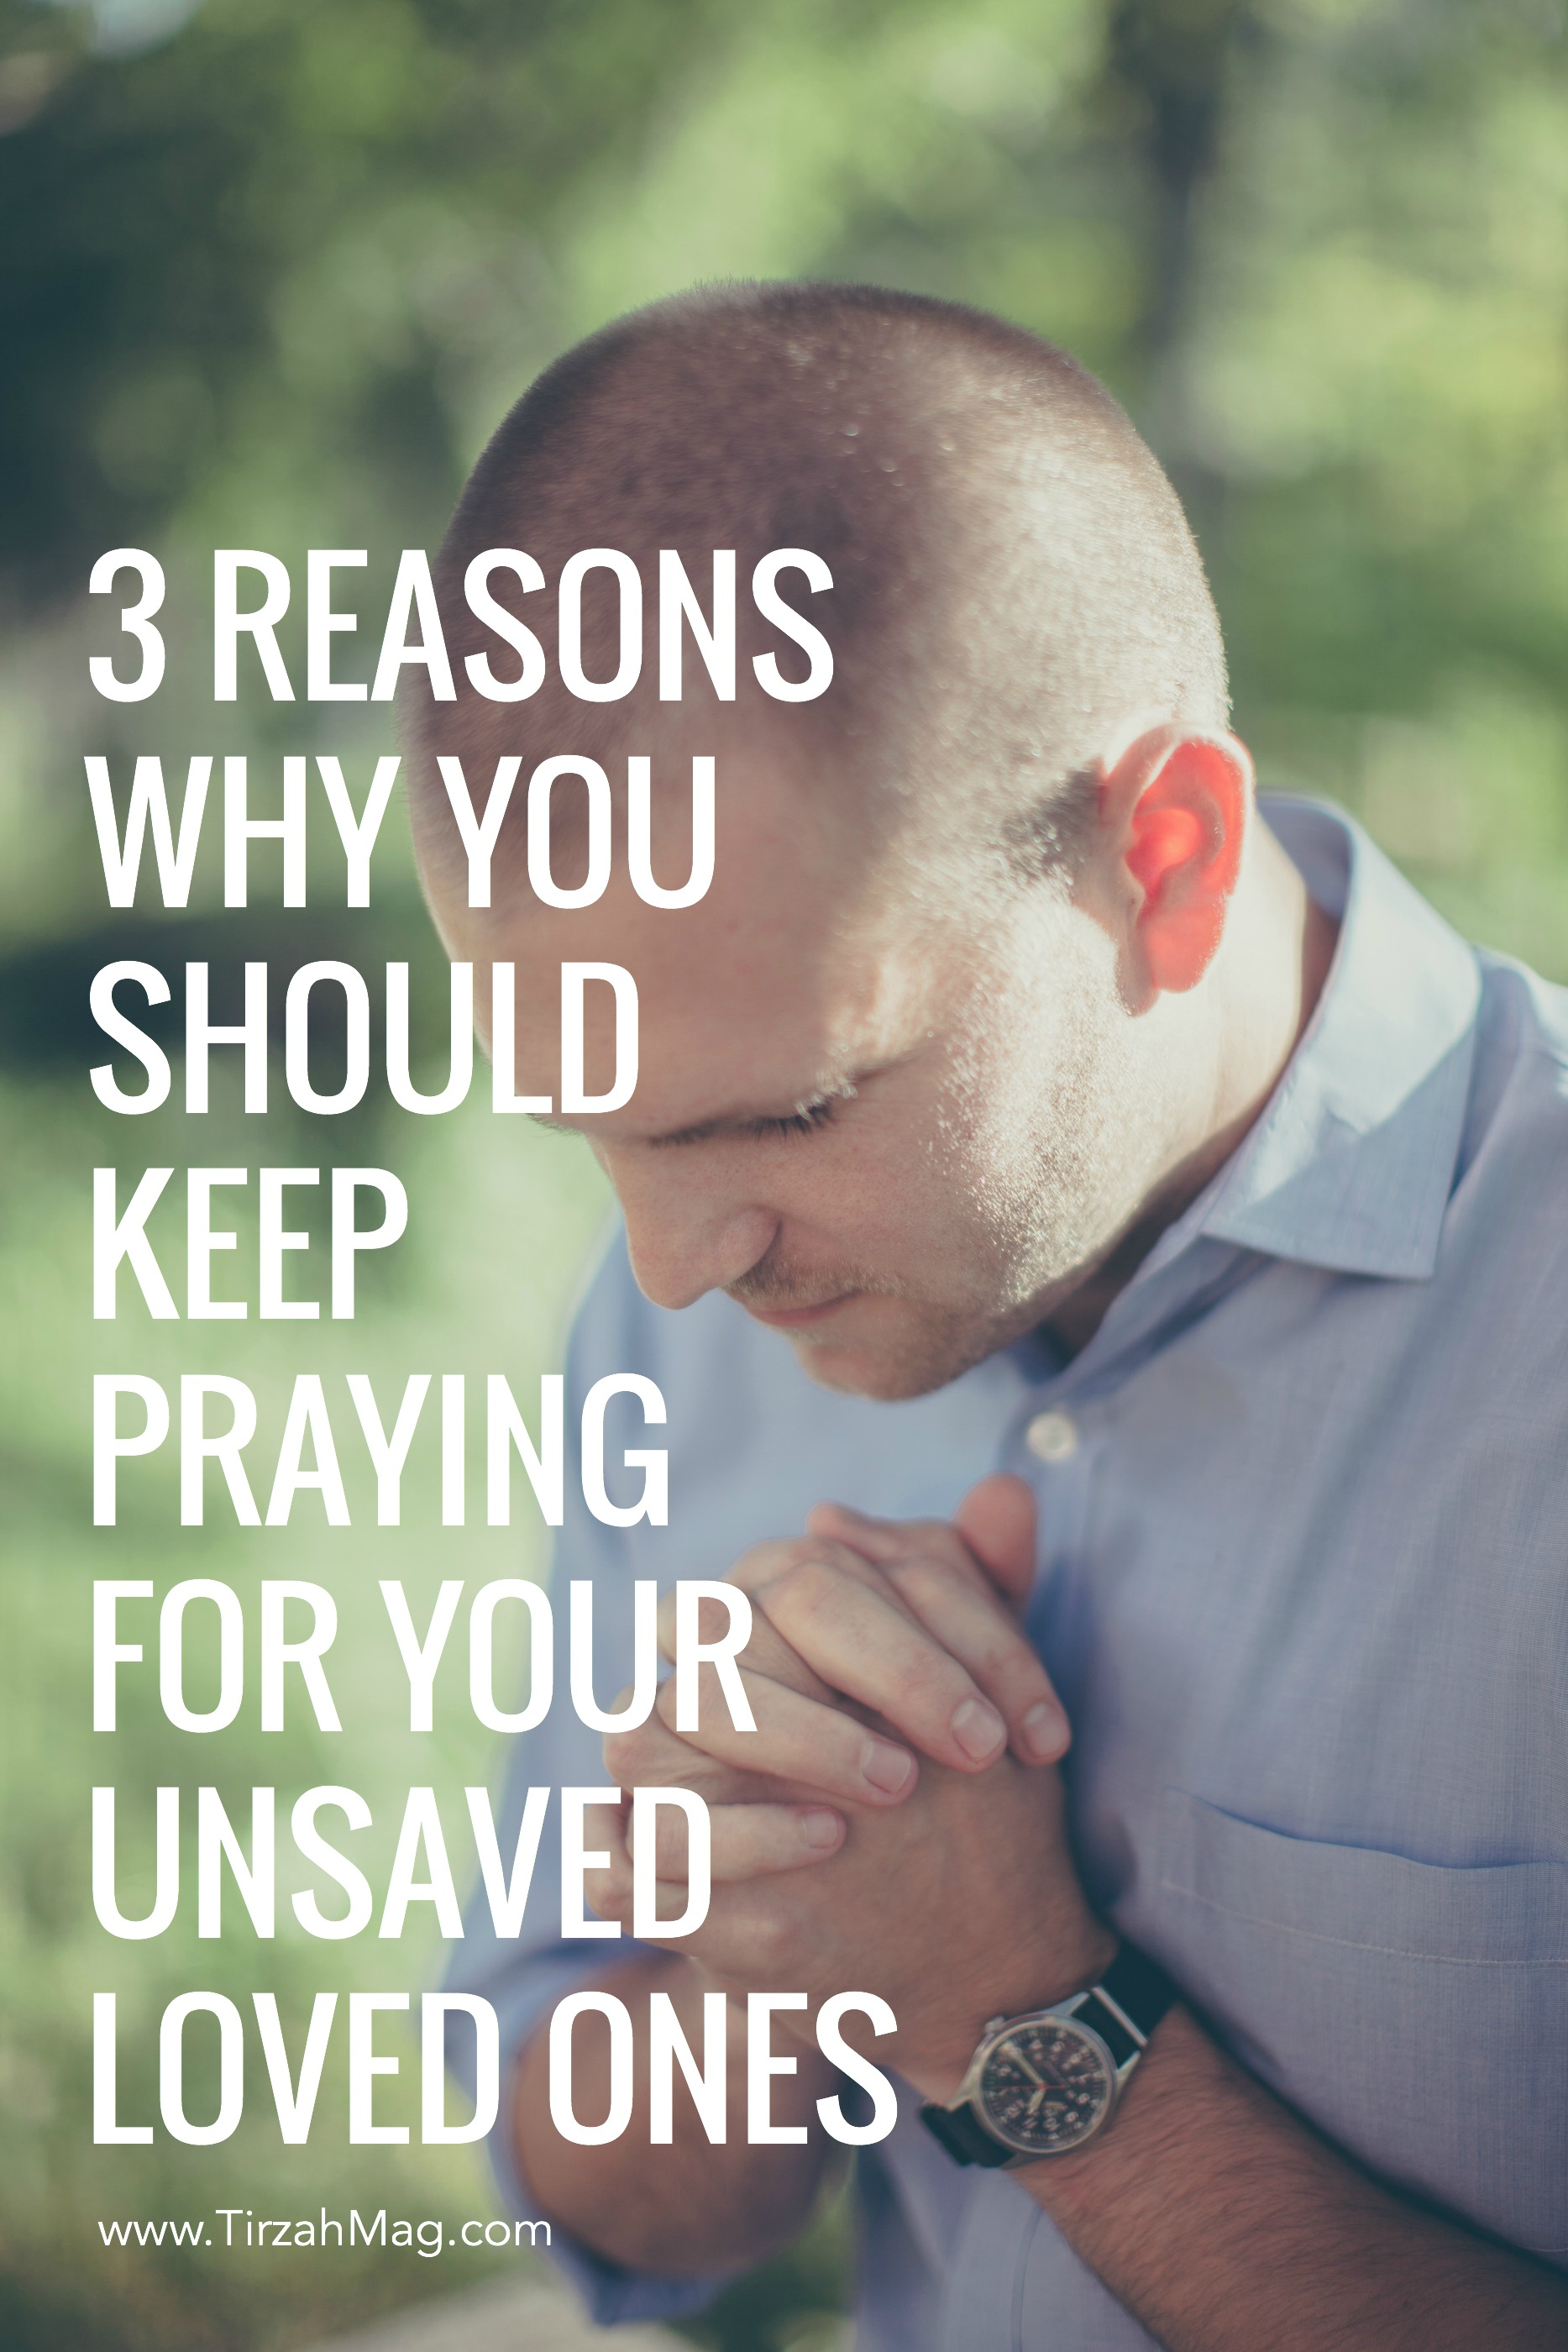 Praying for your unsaved loved ones